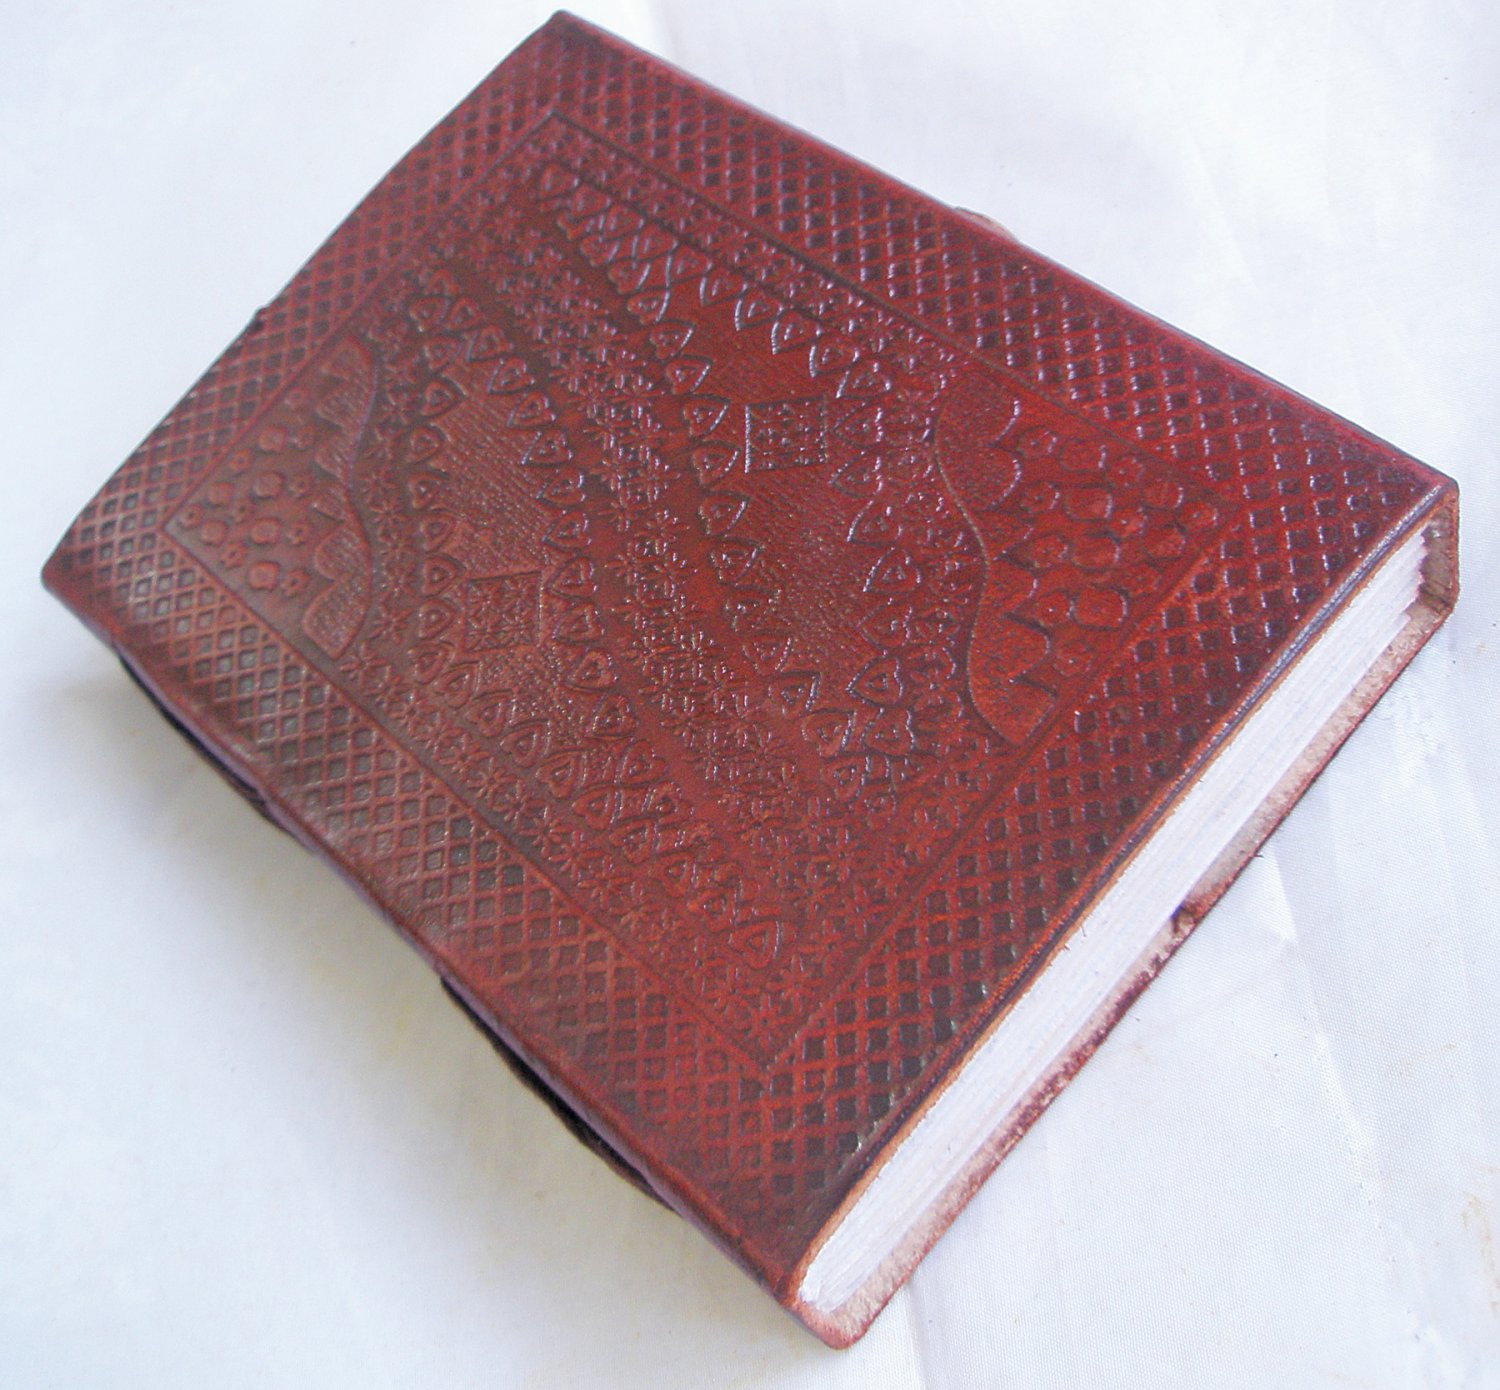 Handmade Paper Leather Bound Embossed Journal Vintage Traveler Diary Notebook Blank Book